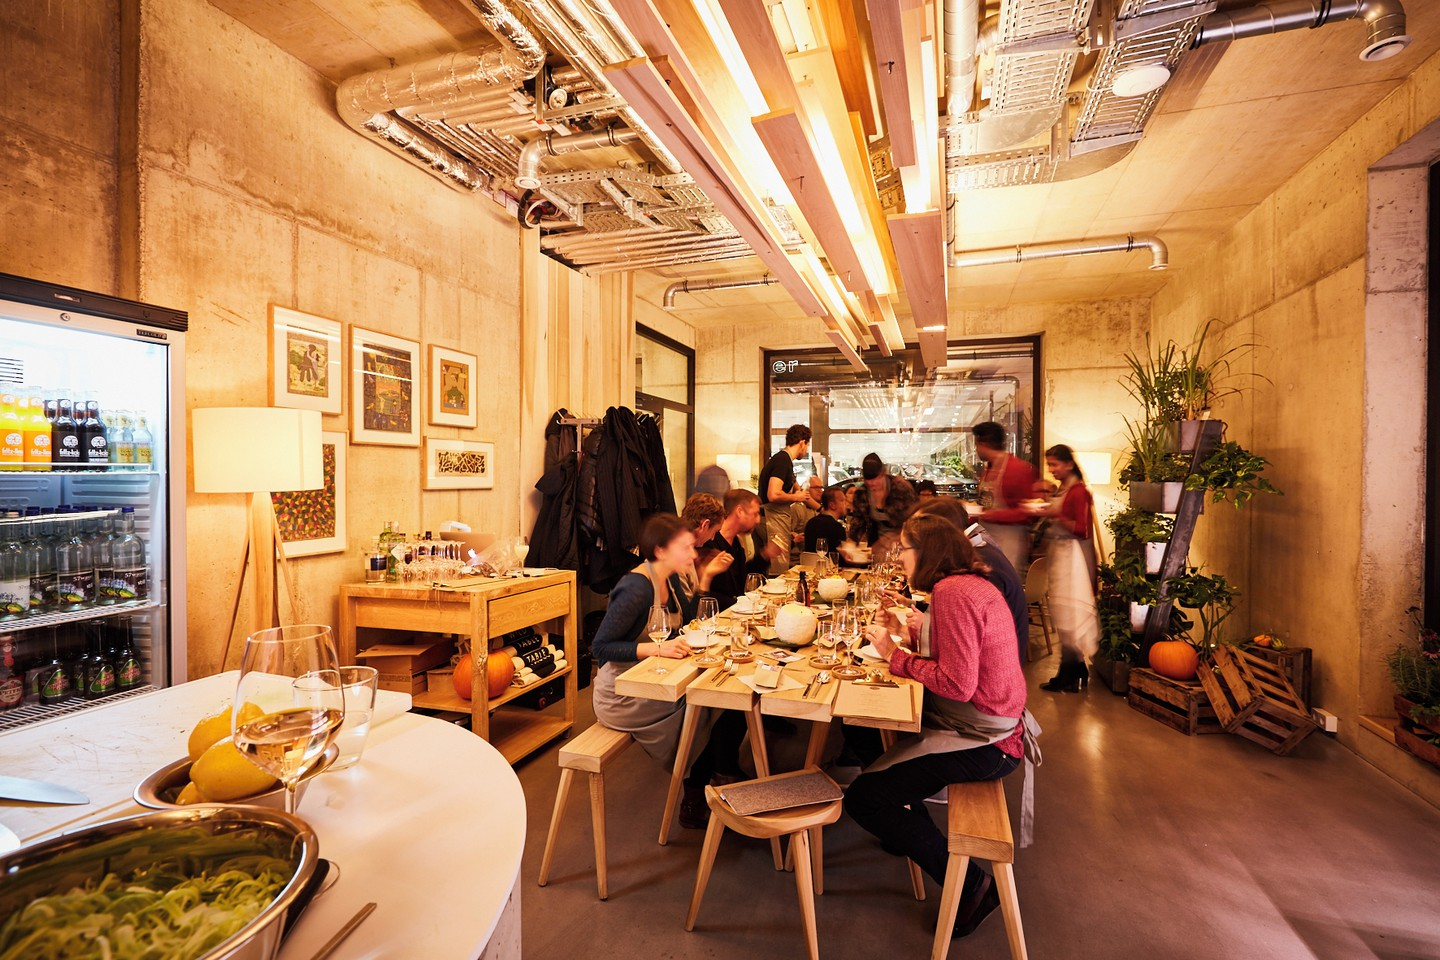 """Cologne workshop spaces Unusual ipartment - """"living kitchen"""" image 1"""